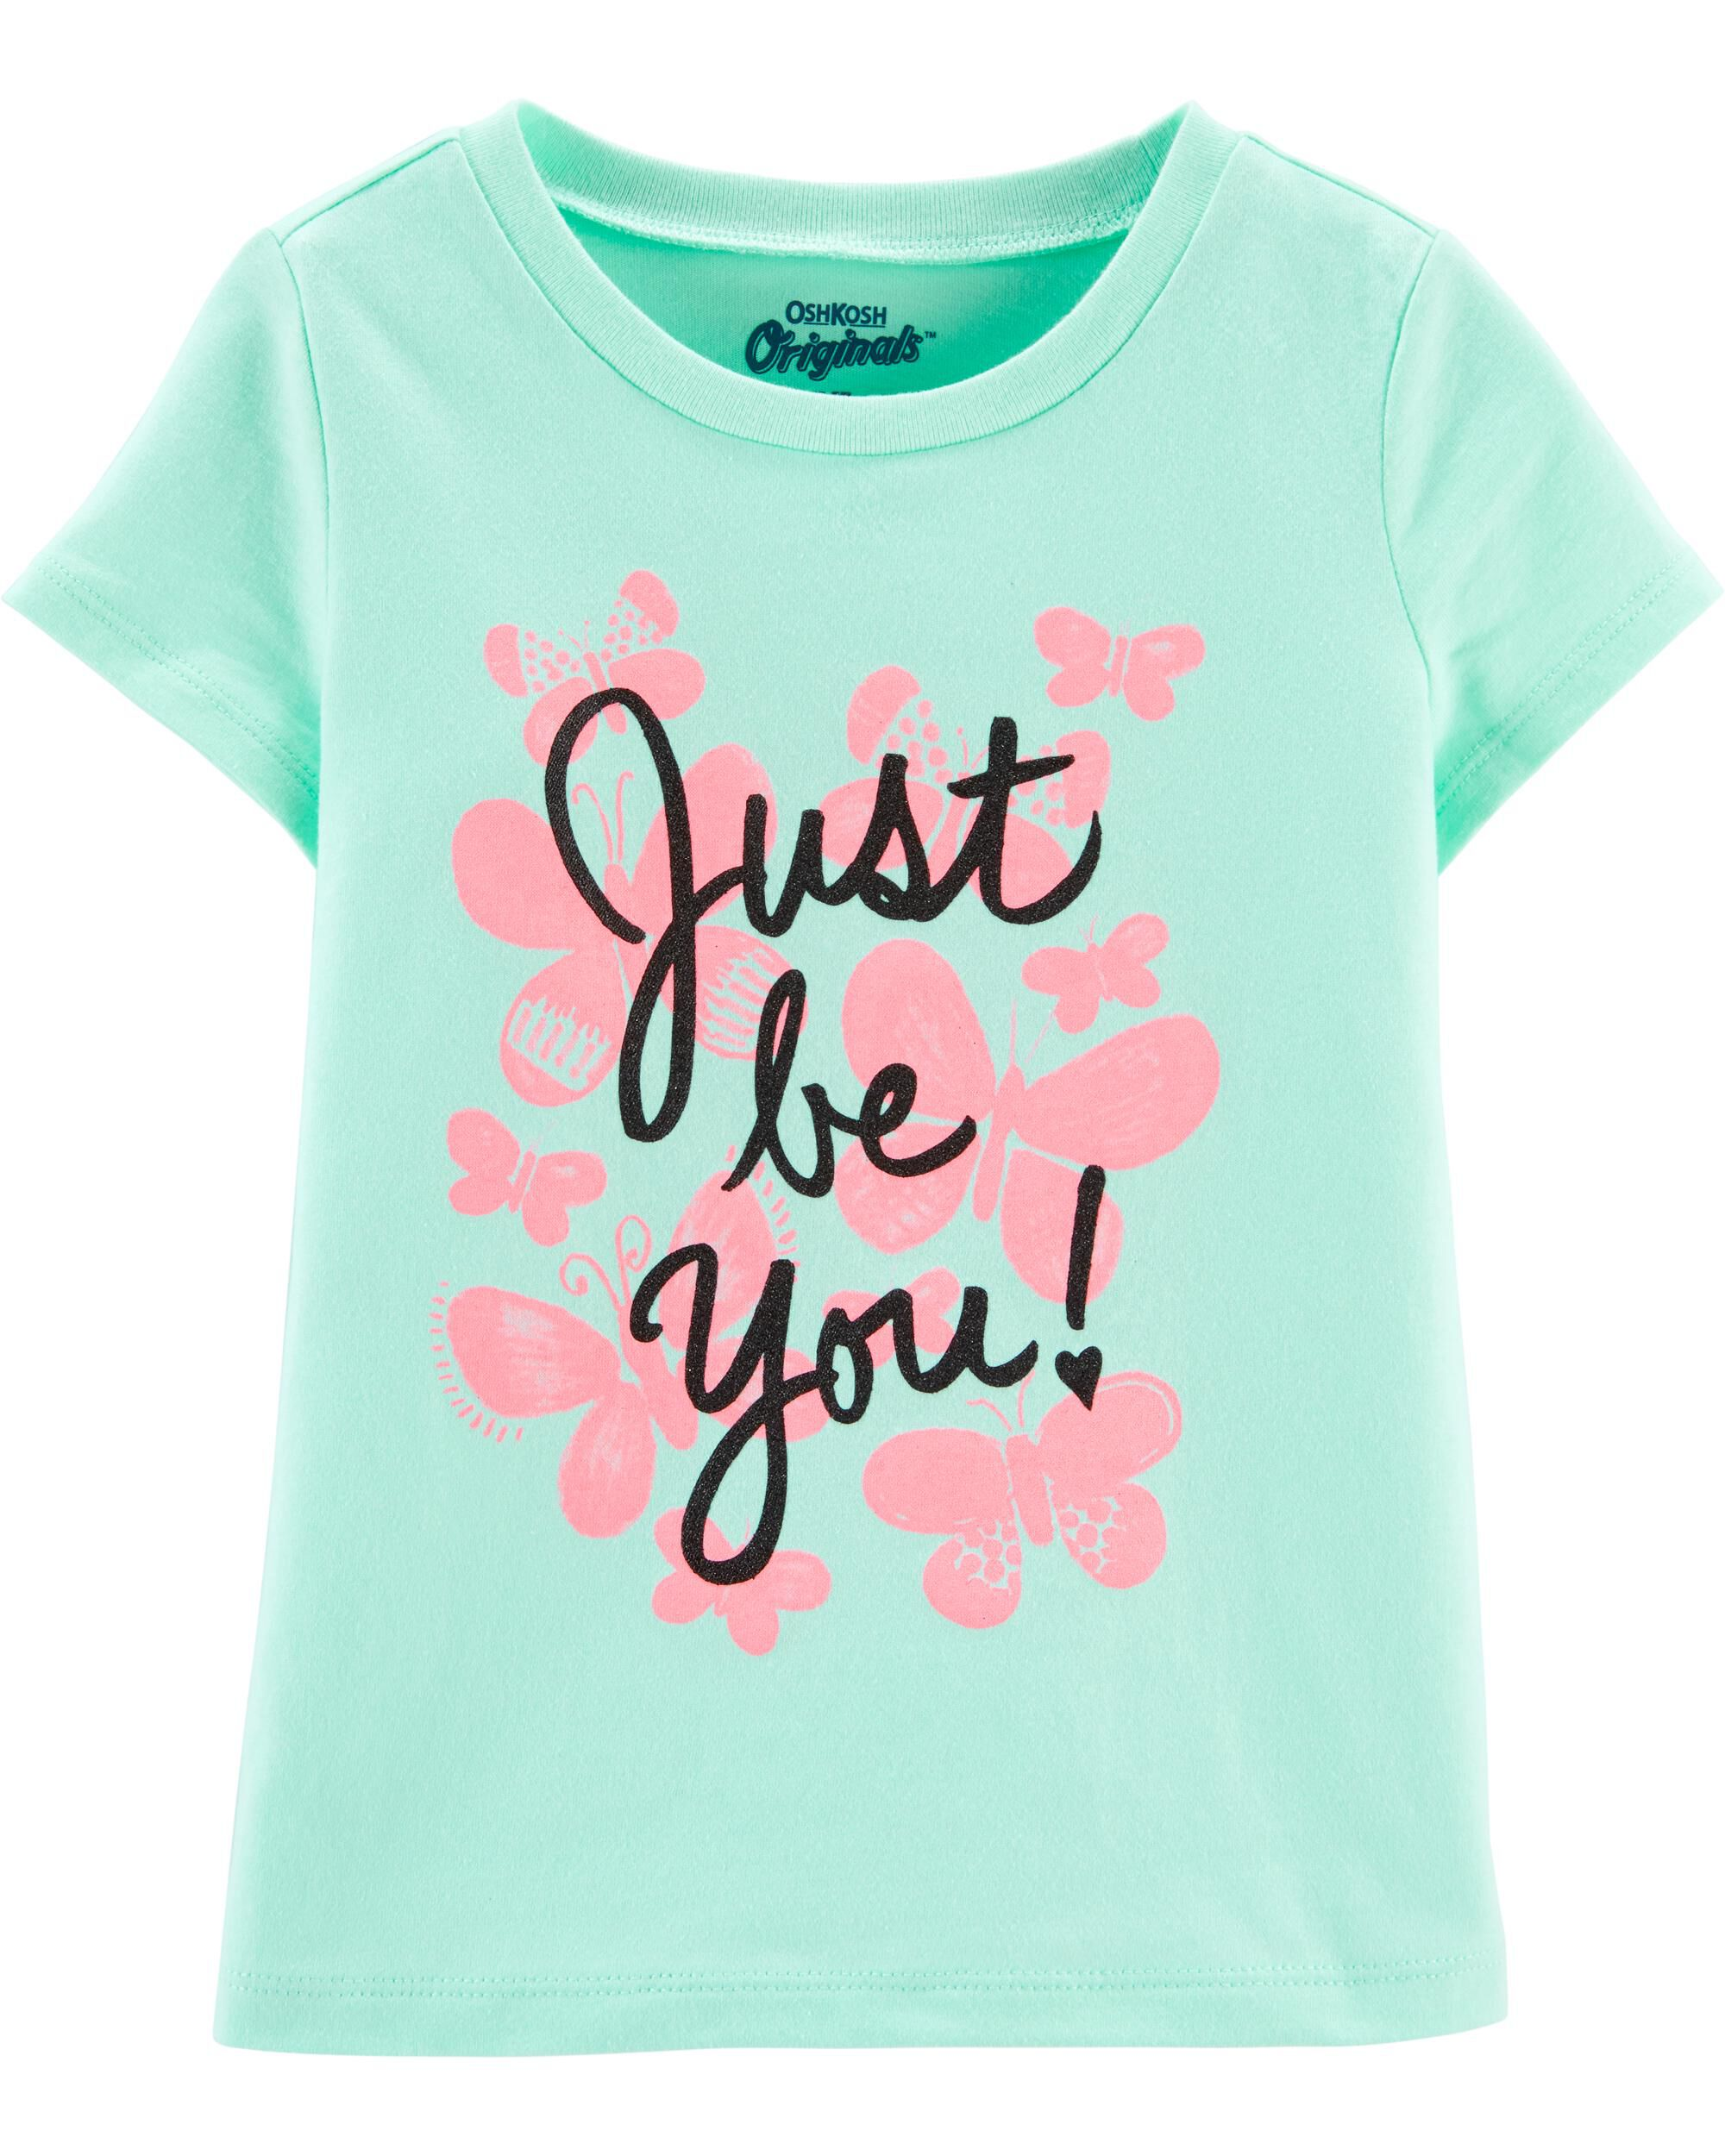 Toddler Girls Tee Shirt t Graphic Black 2t 3t 4t New With Clearance